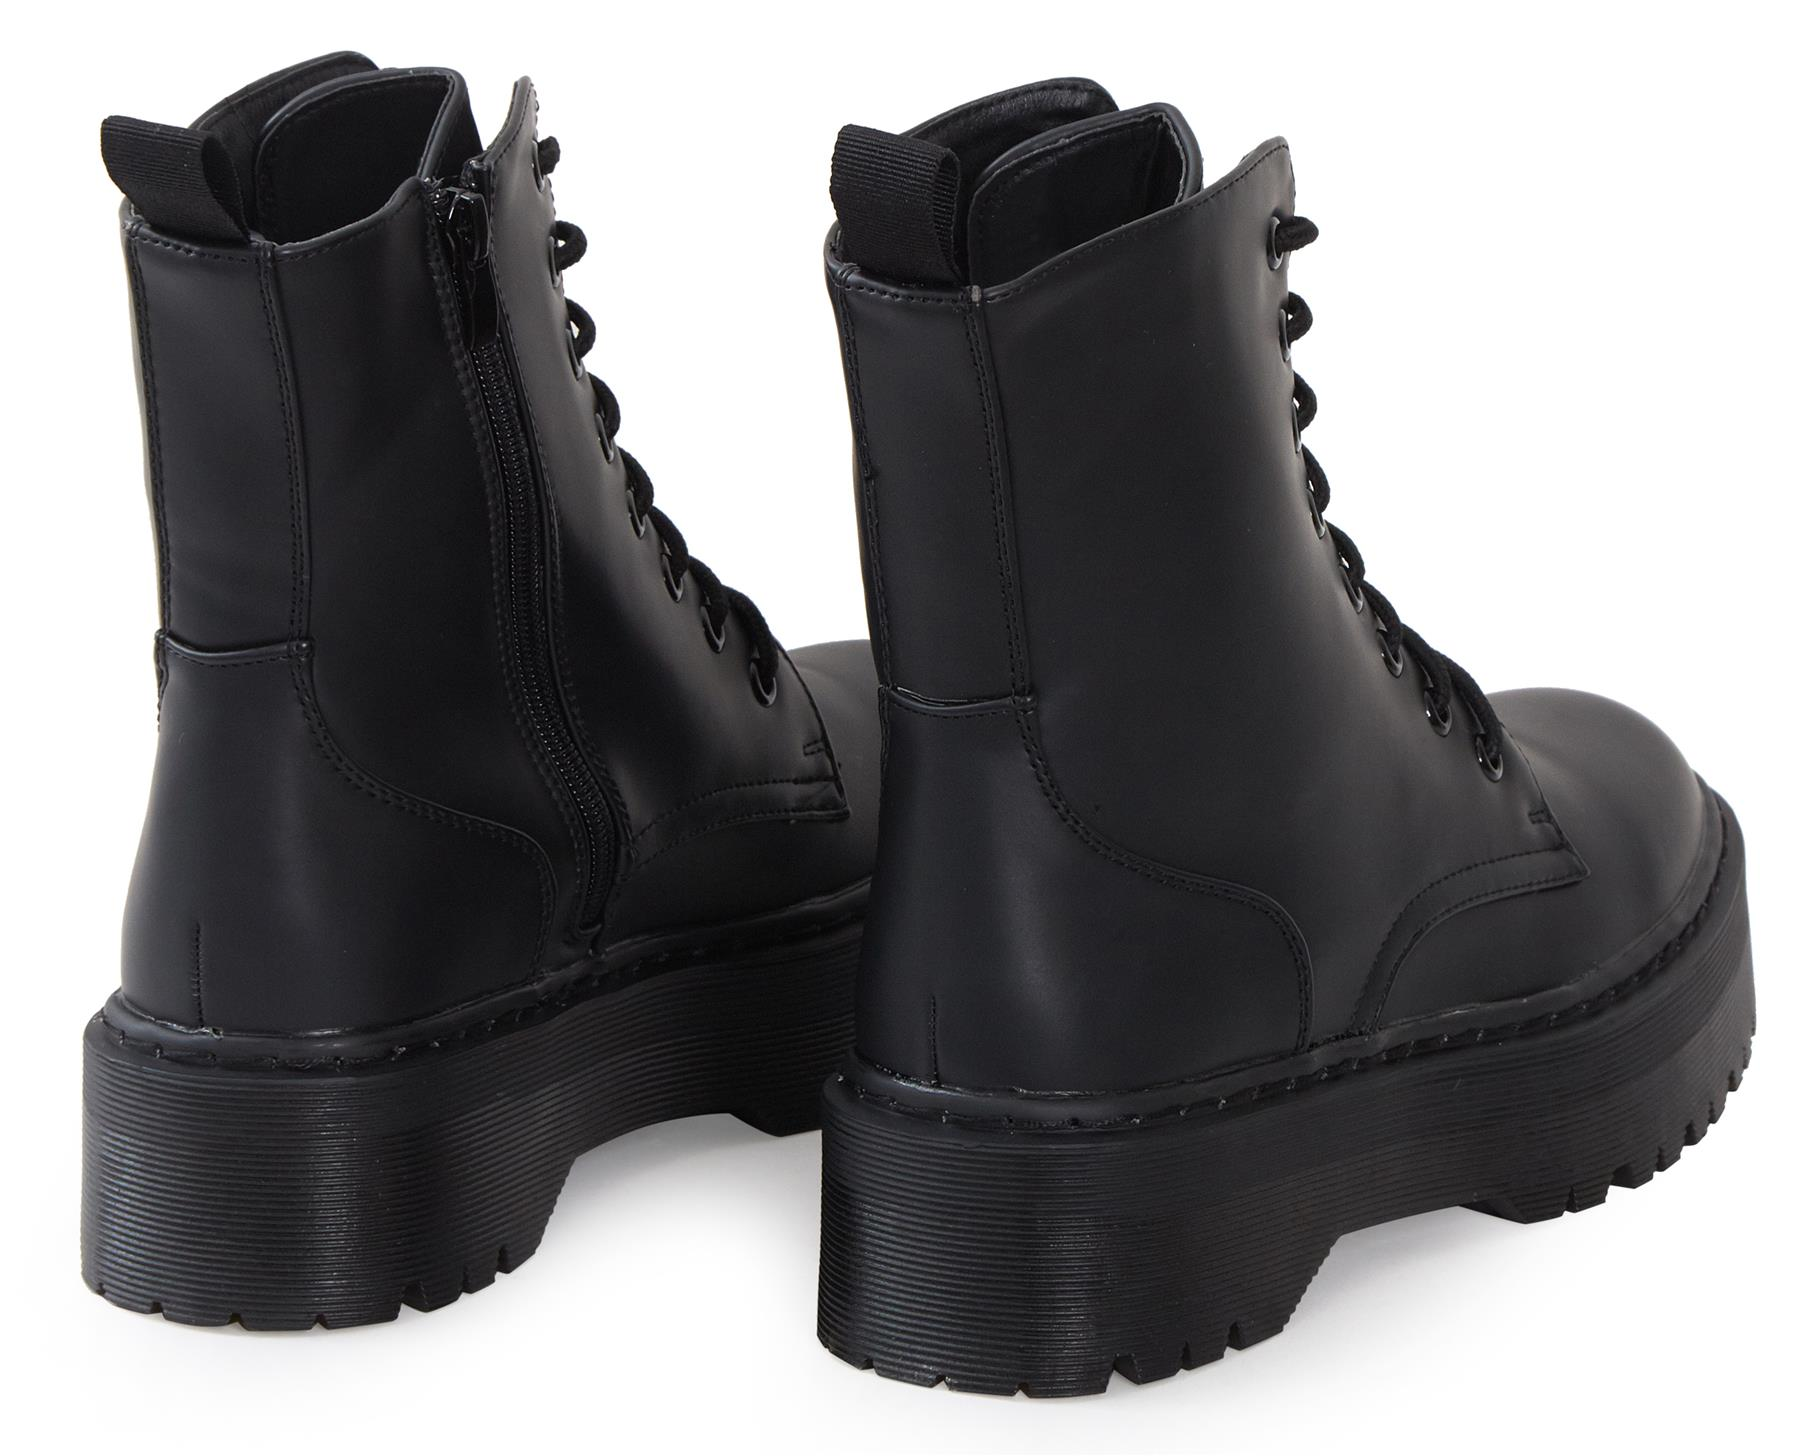 Womens-HiTop-Platform-Military-Punk-Biker-Ankle-PU-Leather-Lace-Up-Vintage-Boots thumbnail 12